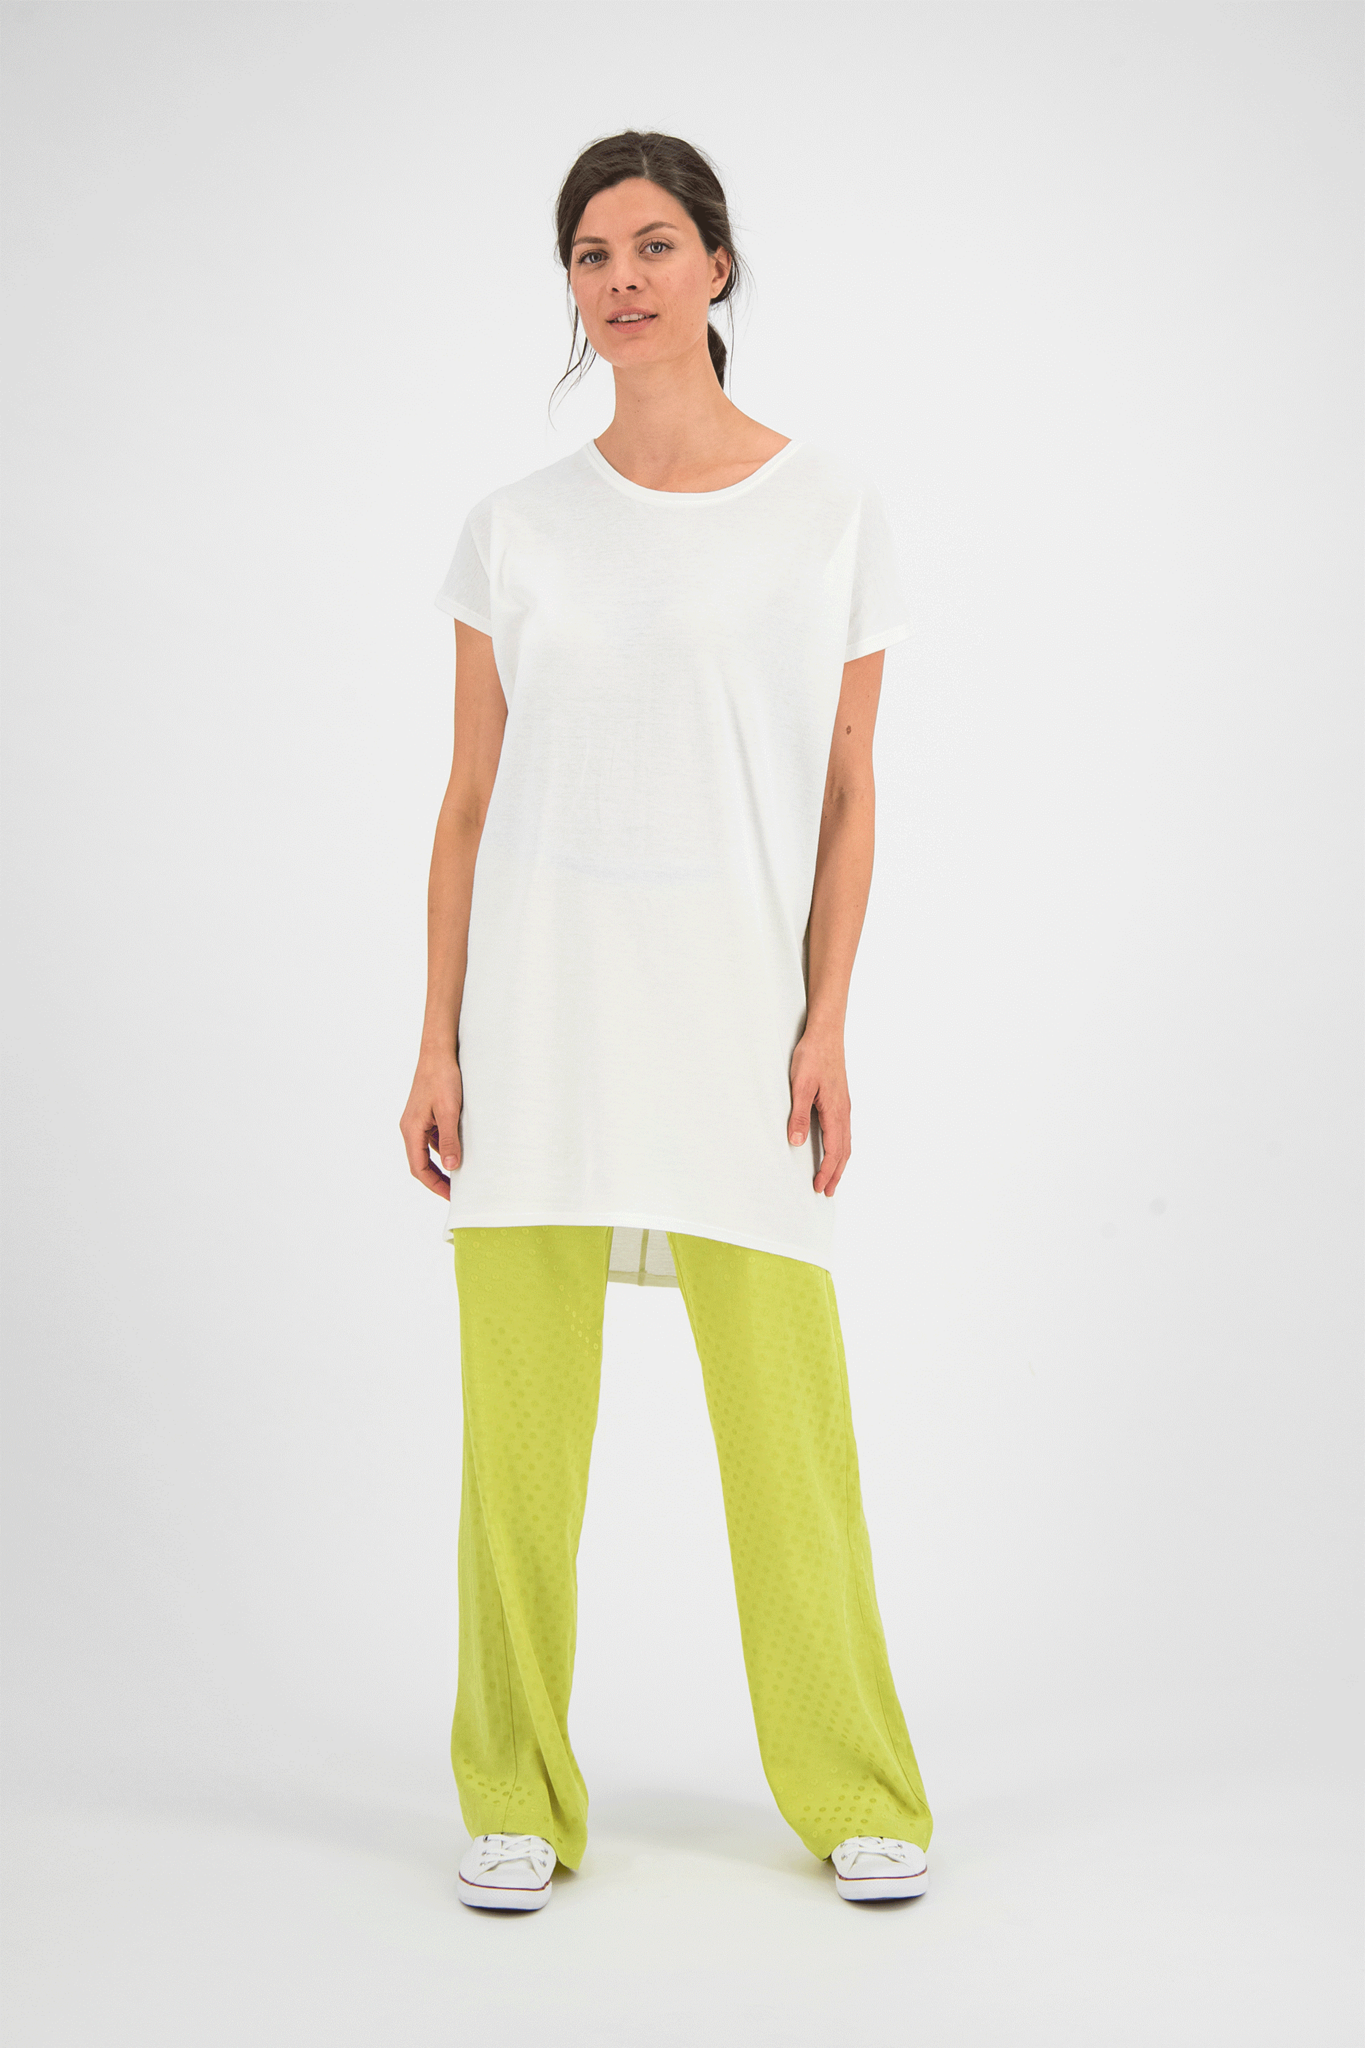 SYLVER Jacquard Trousers - Lime